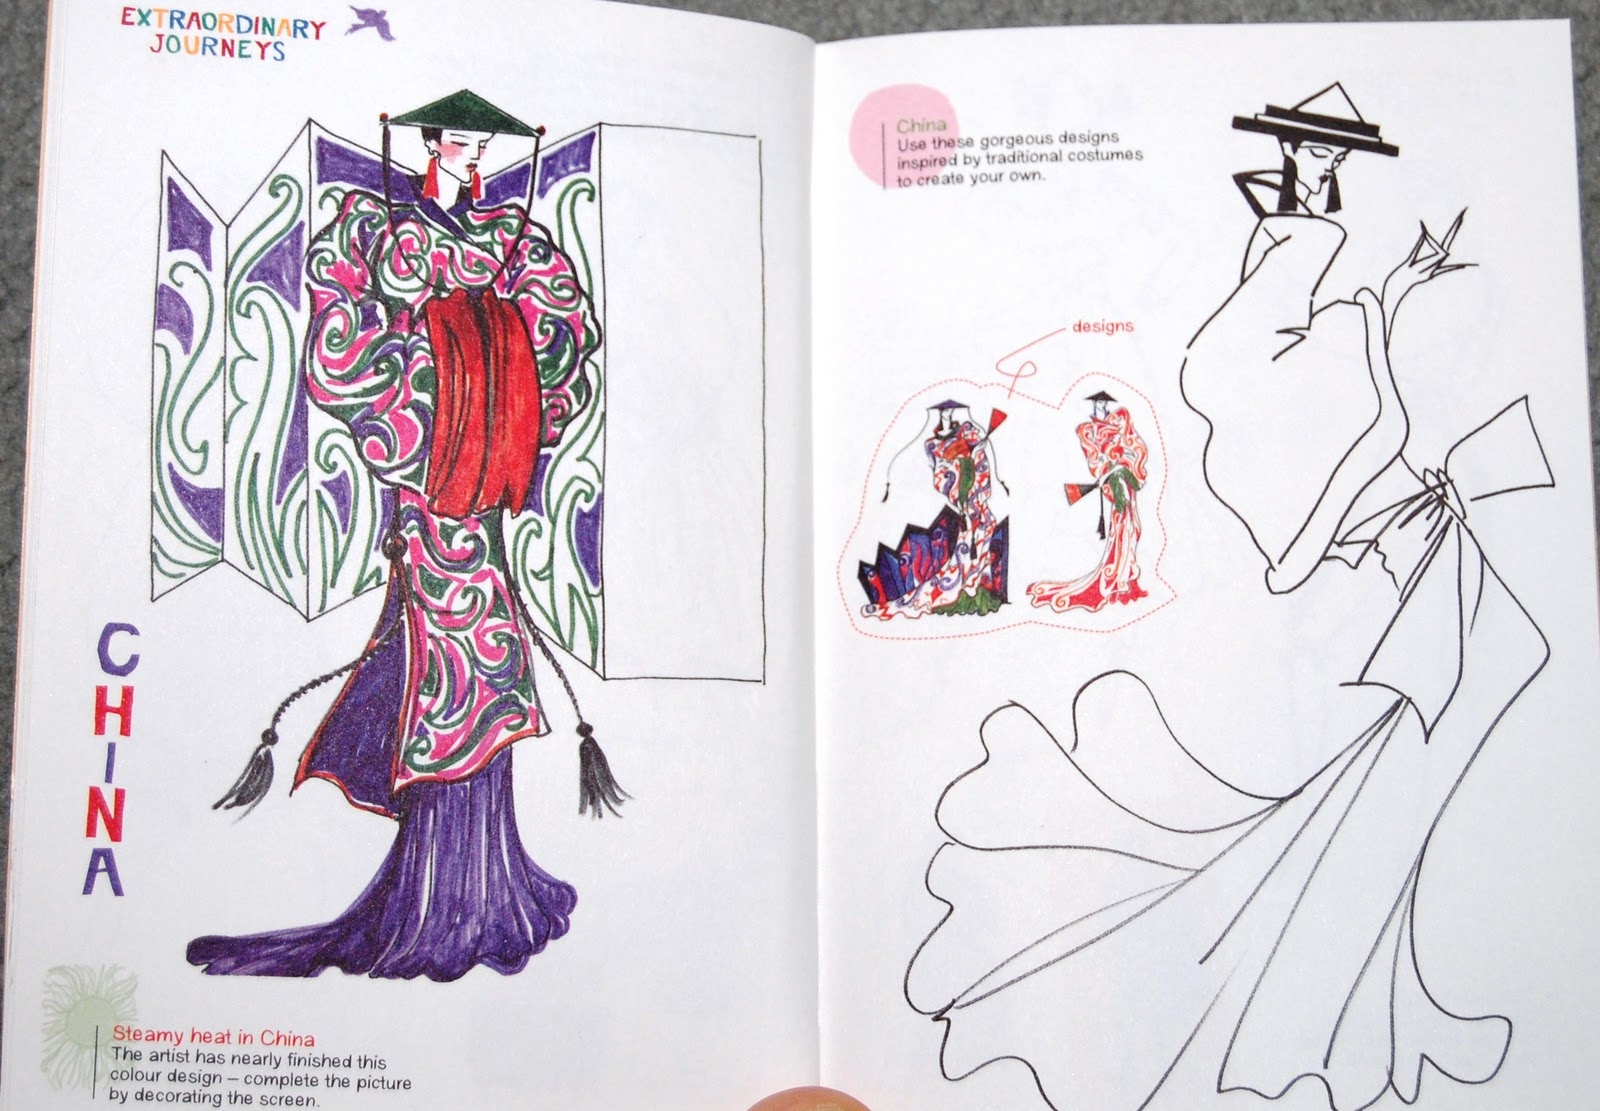 Coloring book yves saint laurent - Have A Look At This Cute Little Book Of Previously Unpublished Sketches By Yves Saint Laurent Those Textiles Fashion Teachers Out There Might Also Like